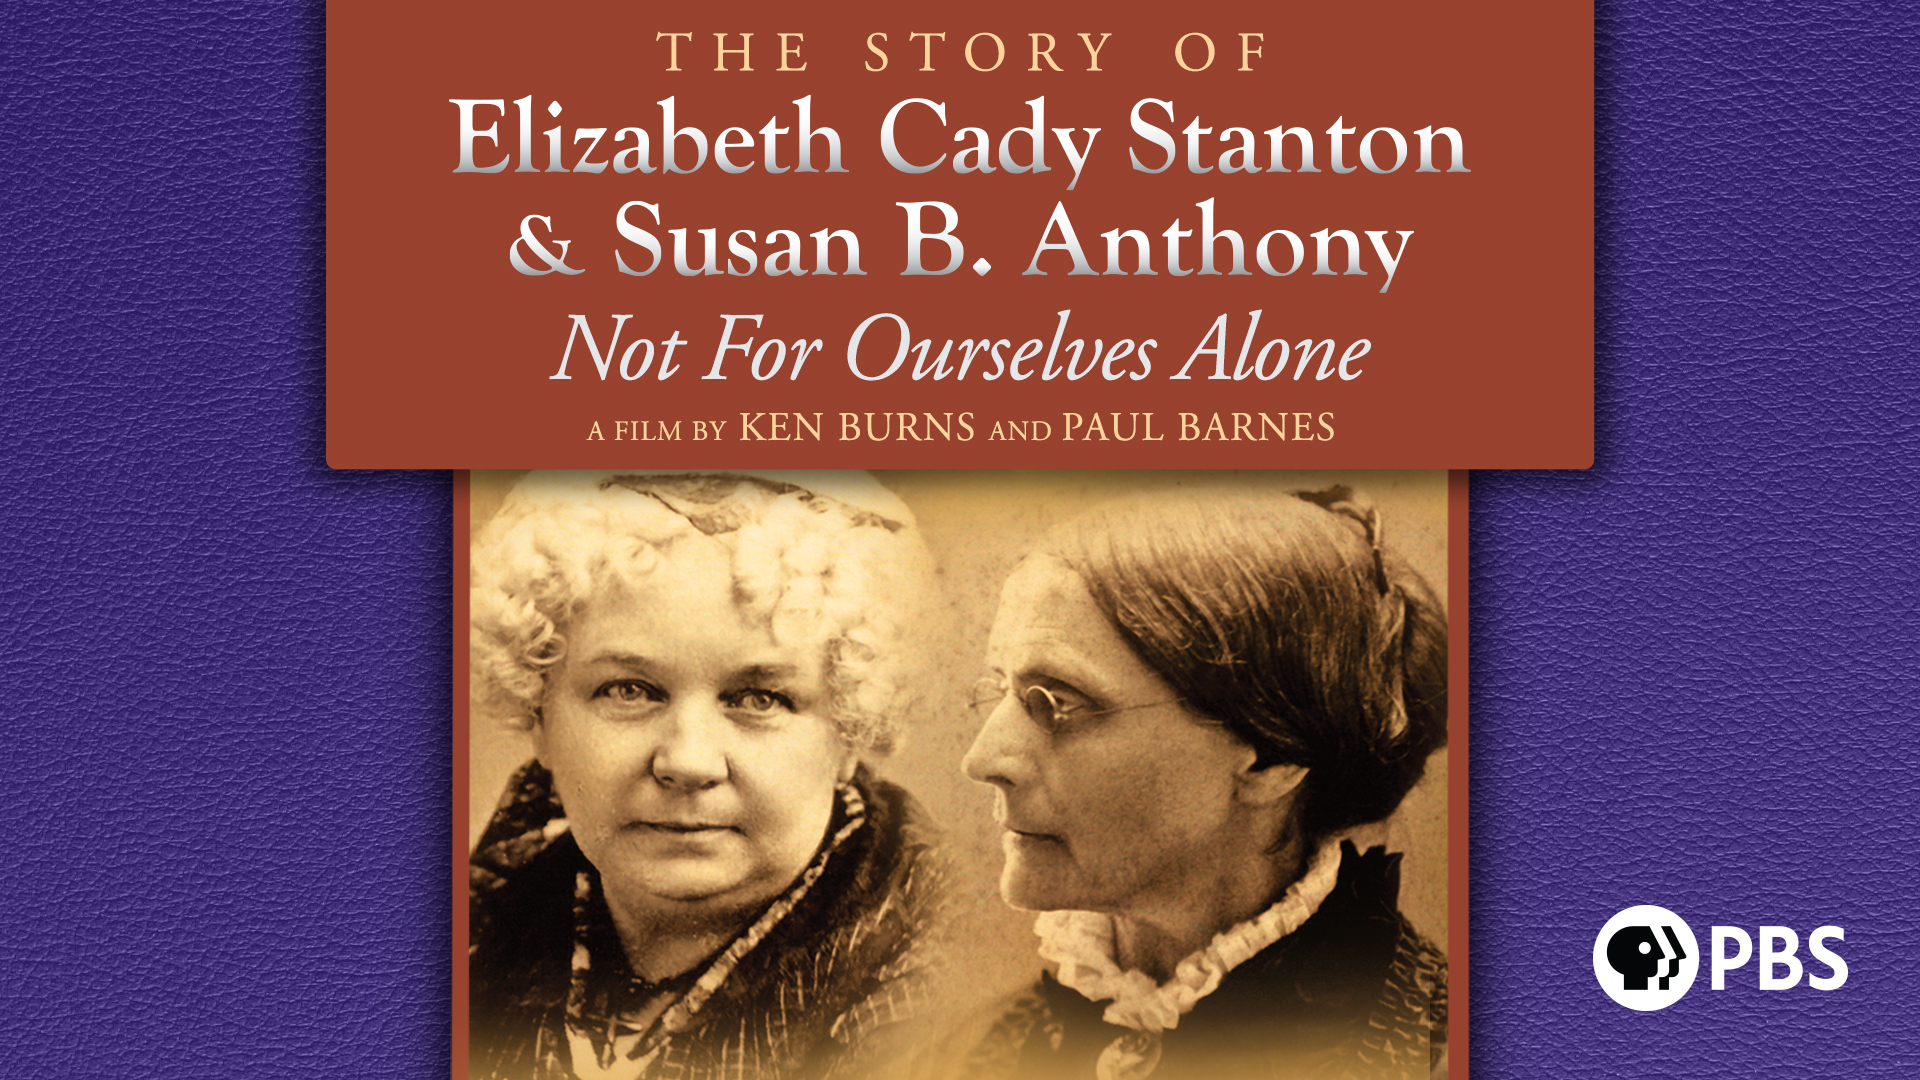 Not for Ourselves Alone: The Story of Elizabeth Cady Stanton & Susan B. Anthony, Season 1